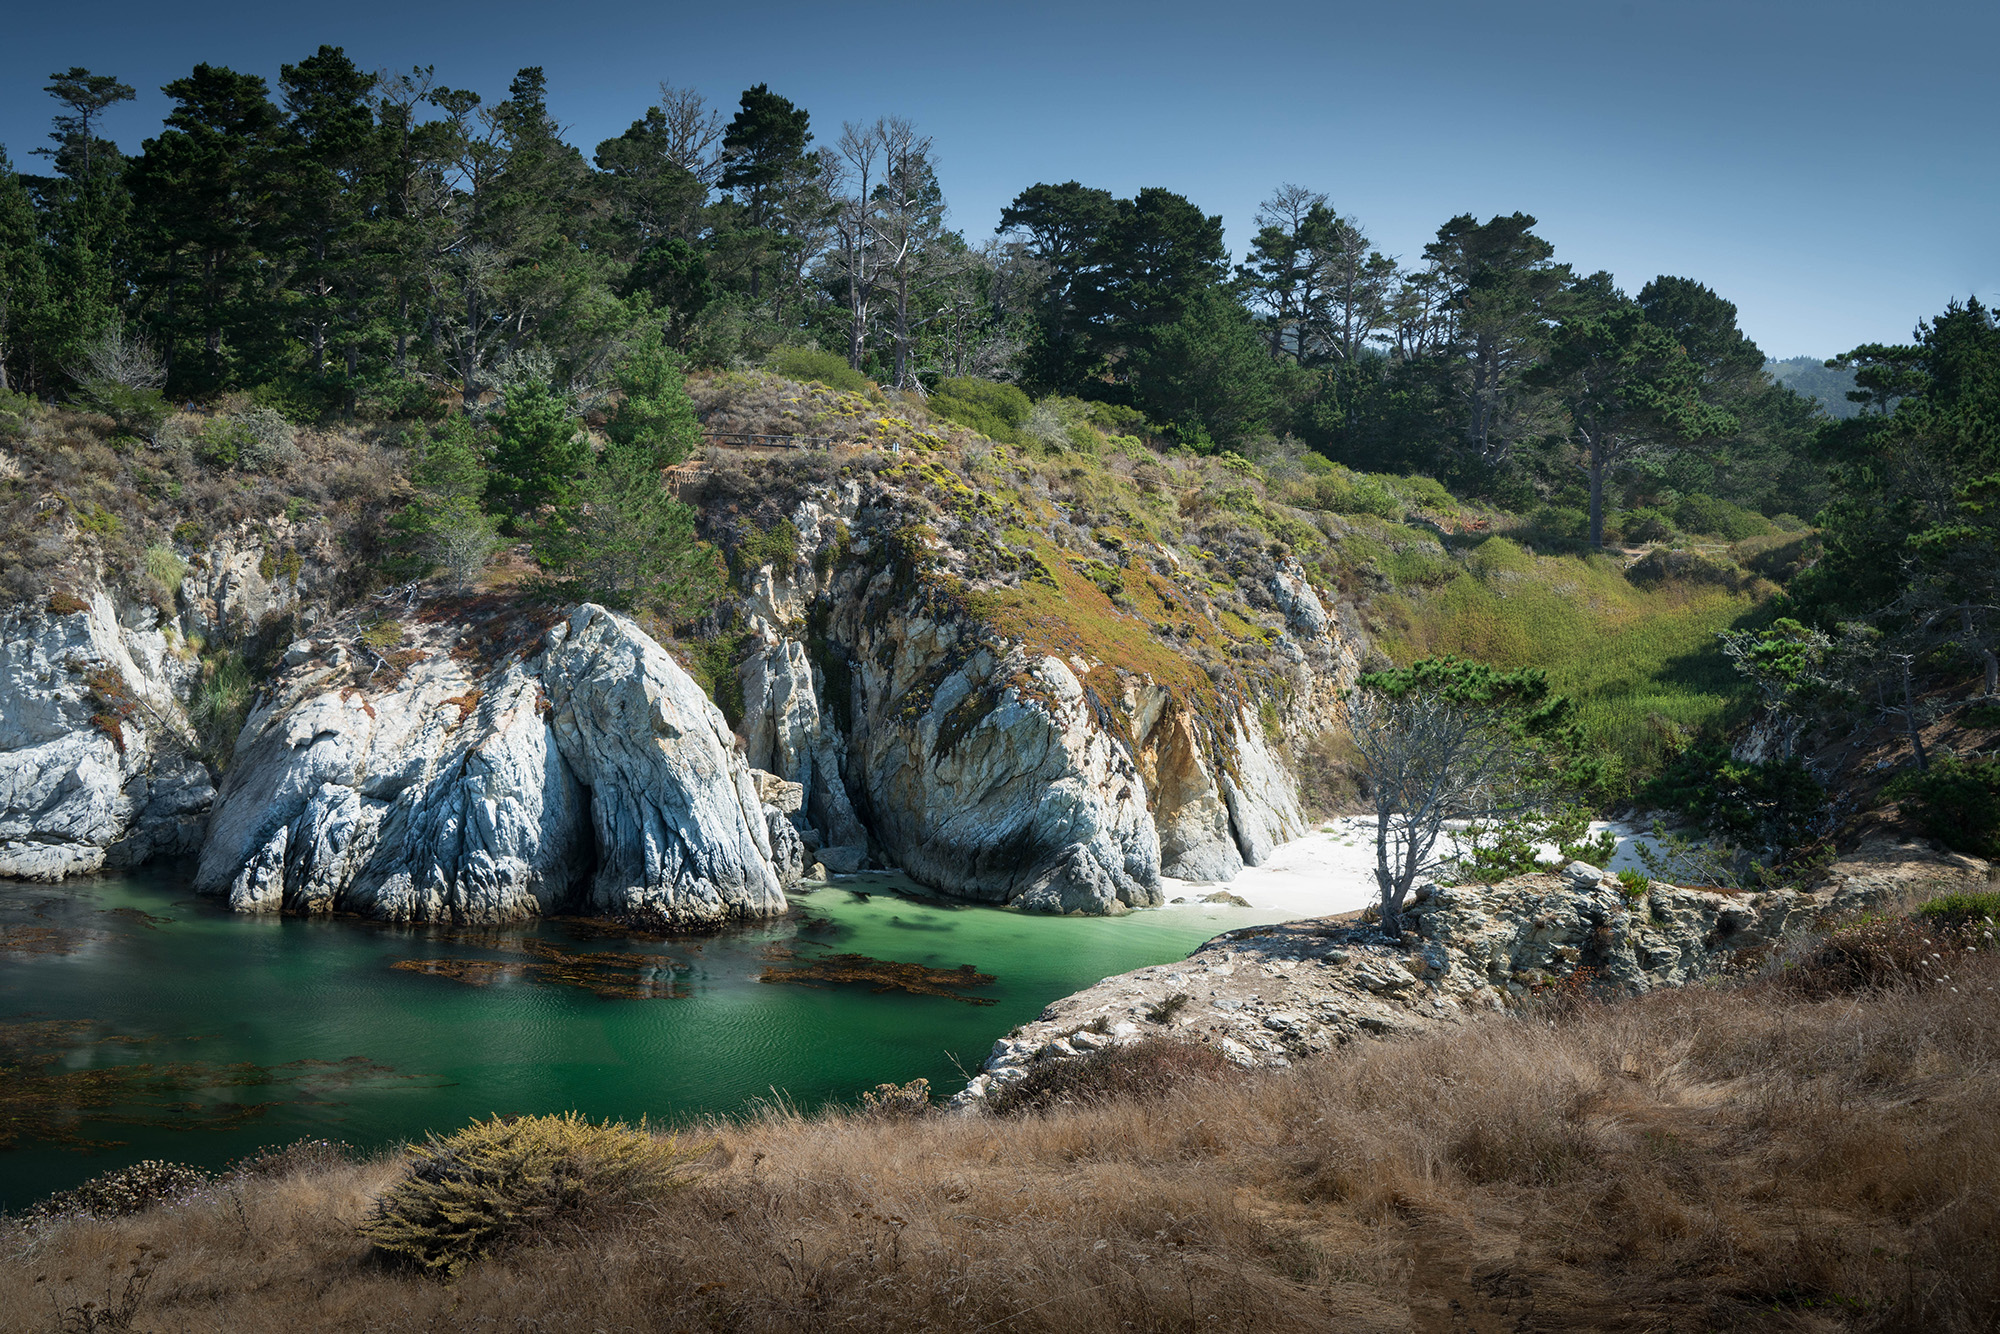 #pointlobos, #cove, #beach, #deserted, #private, #green, #california, #bigsur, #hike, #landscape, #photography